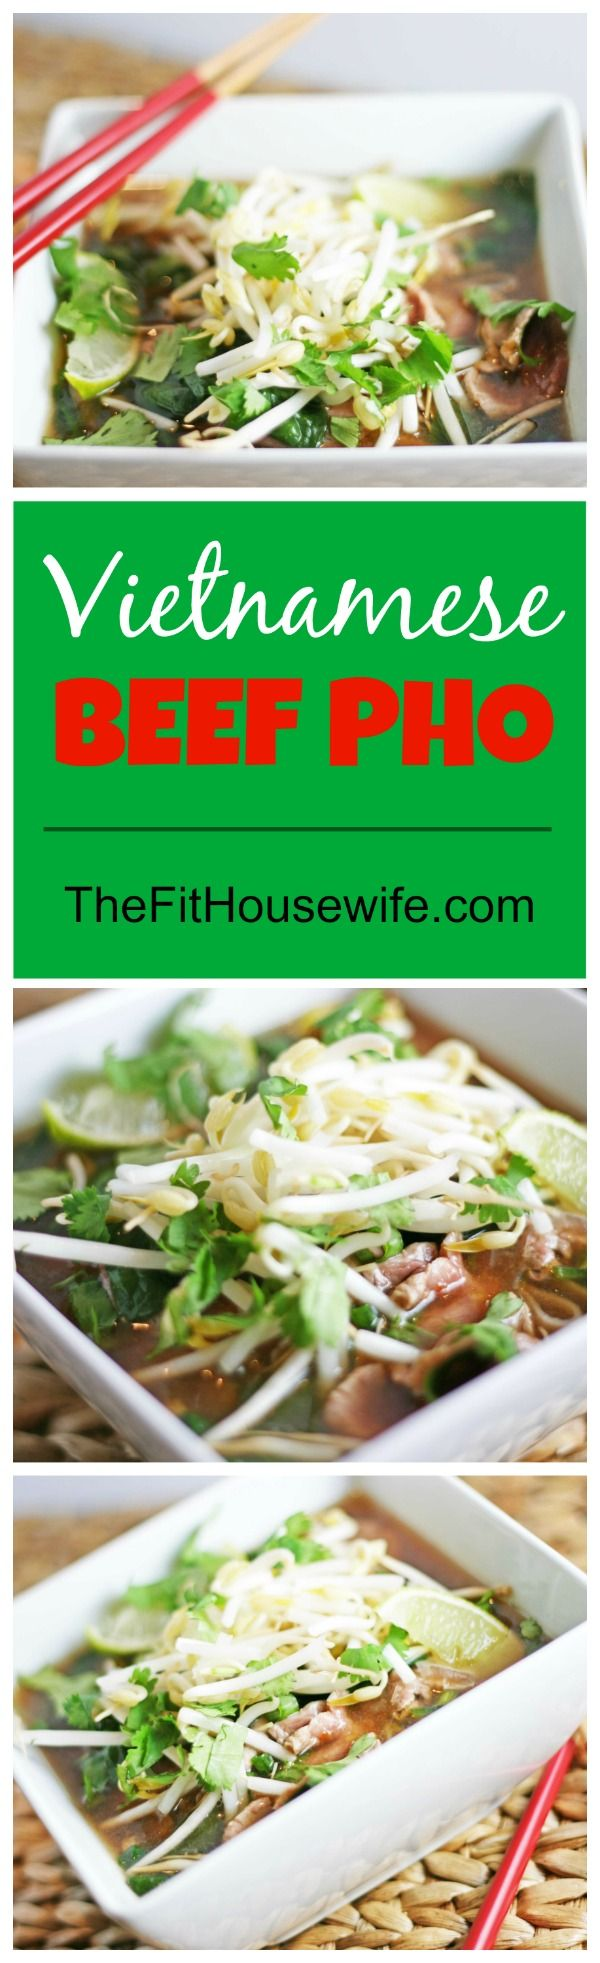 Vietnamese Beef Pho. A flavourful soup that you can make at home. 21 Day Fix: 1 green, 1 yellow, 1 red Healthy recipe.